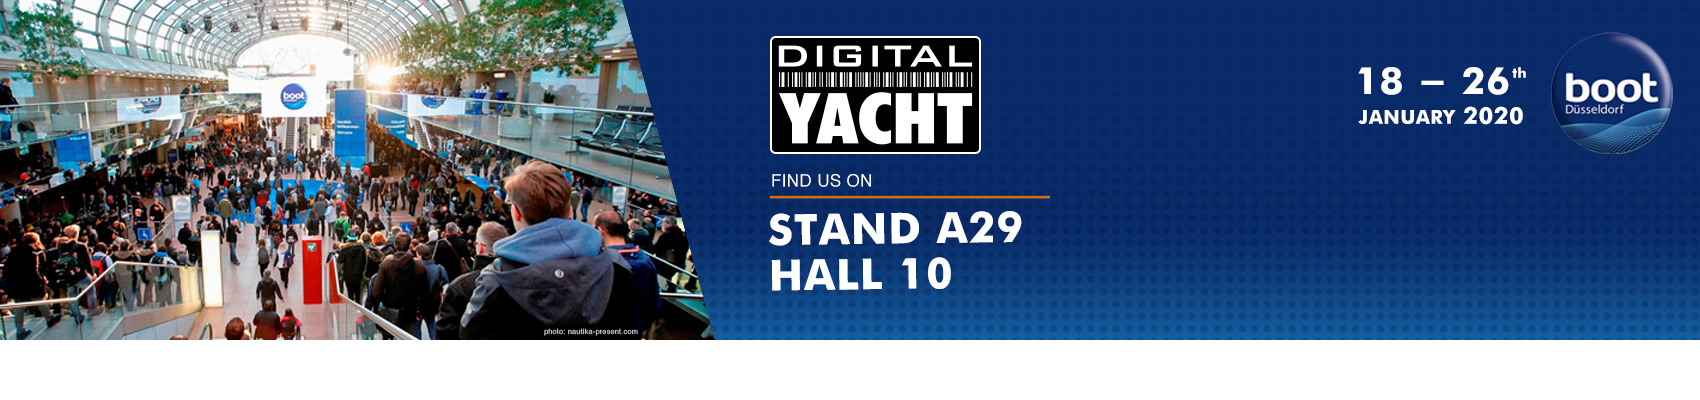 Digital Yacht at the Boot in Dusseldorf